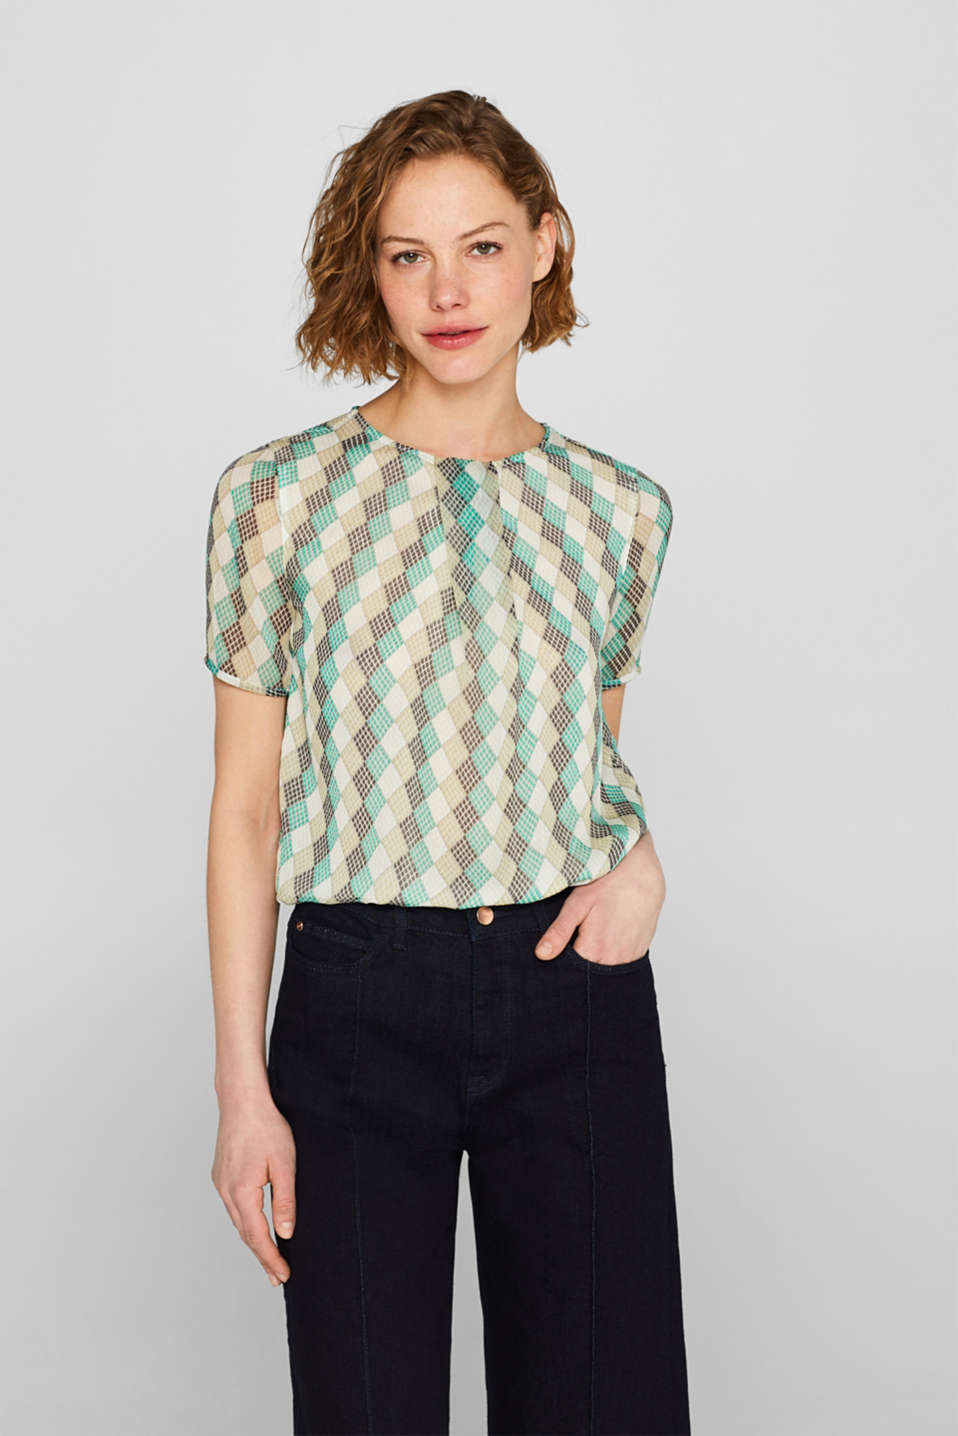 Esprit - Chiffon blouse with a diamond print